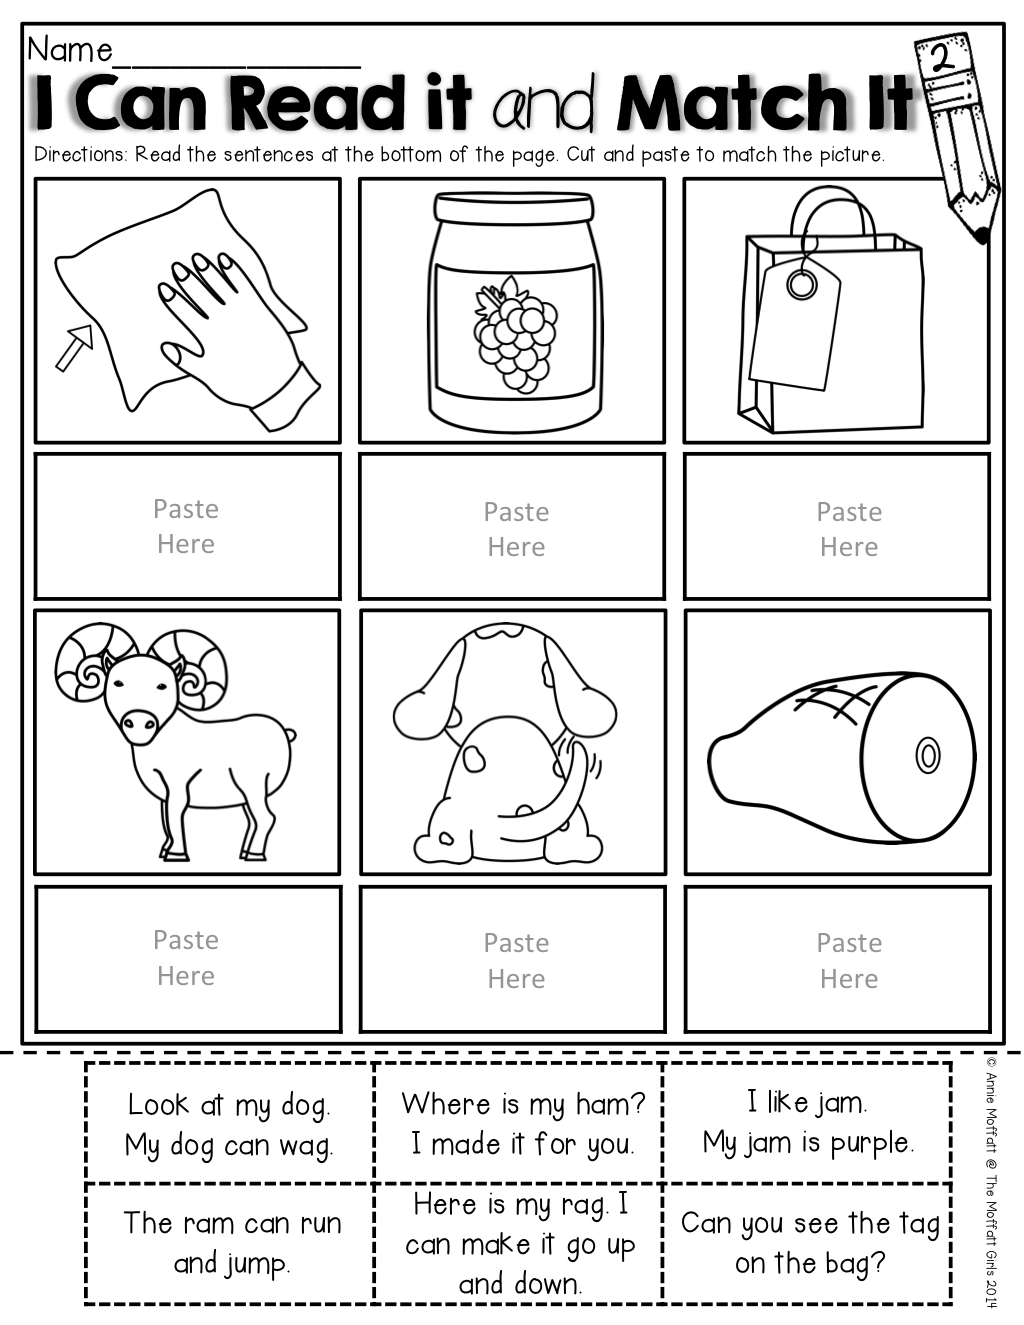 Free Third Grade Worksheets For Reading English Science Social Stu S